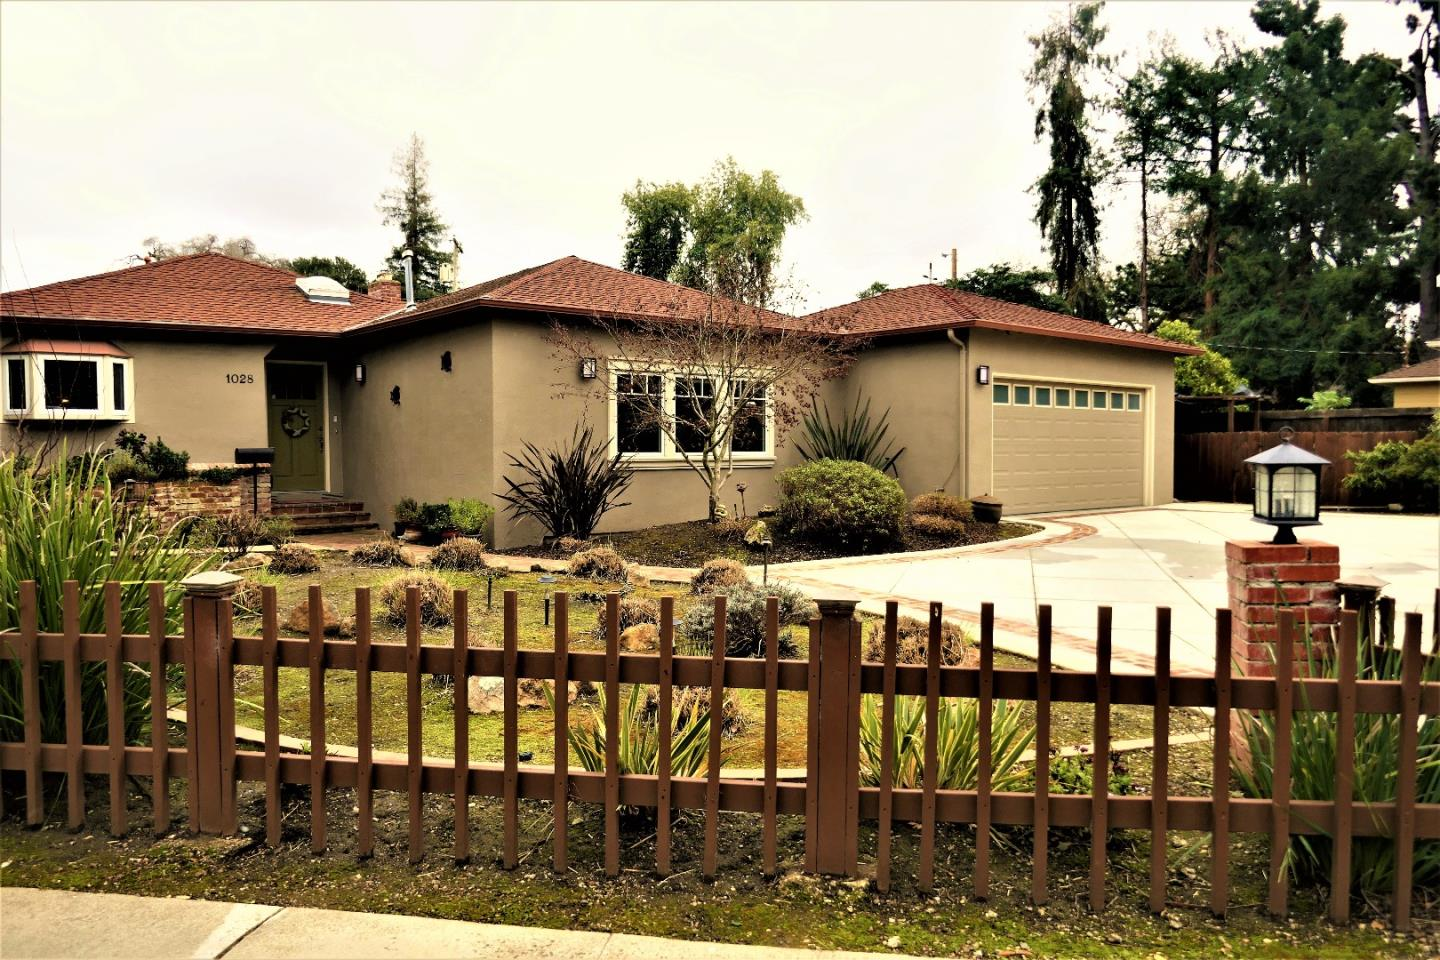 Additional photo for property listing at 1028 Ringwood Ave  MENLO PARK, CALIFORNIA 94025